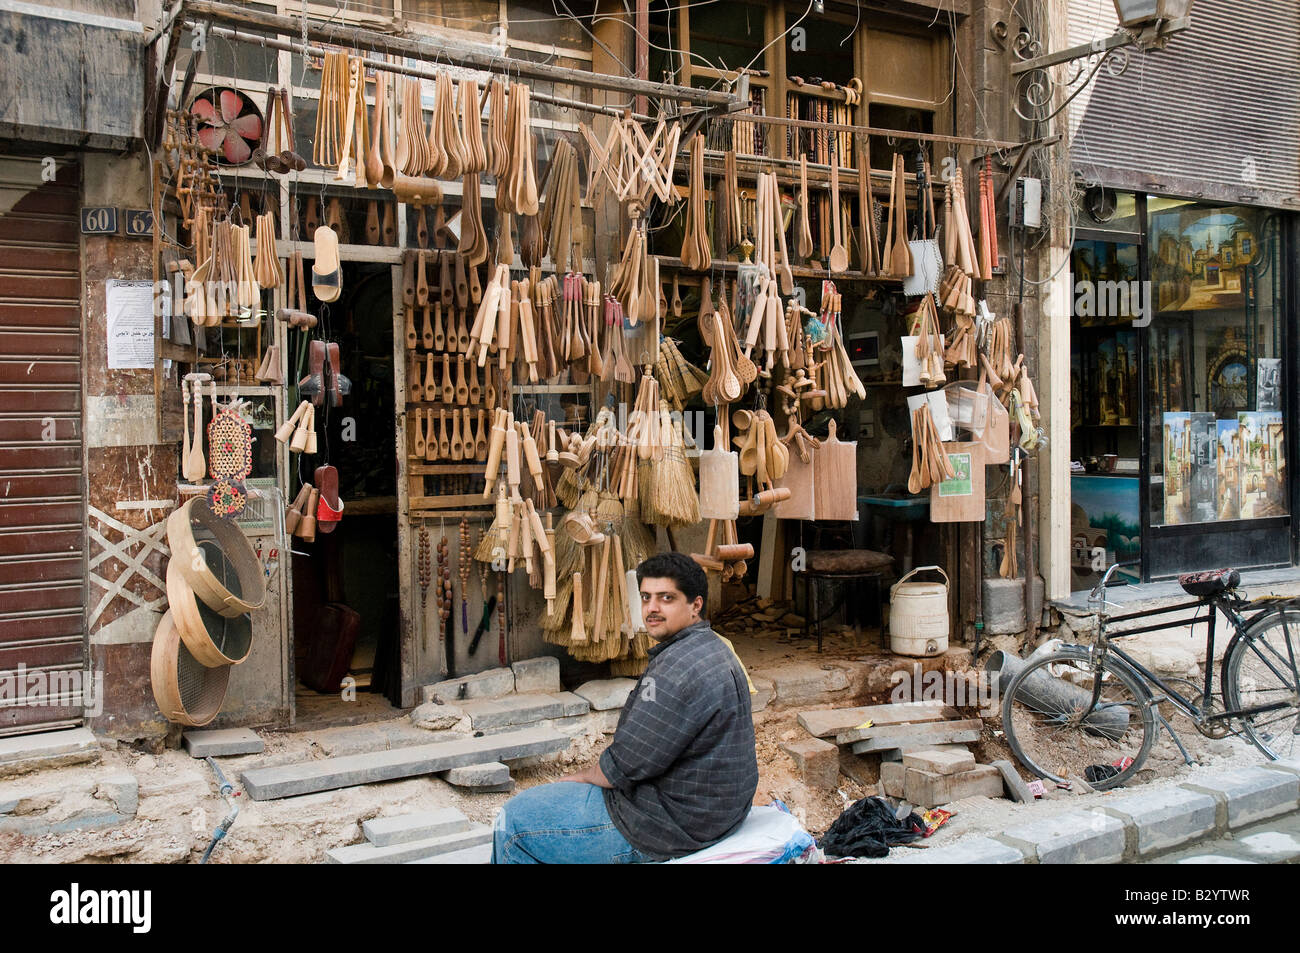 Syria. Shop selling kitchenware and items in wood in center of Damascus.  Street being repaired and modernized Stock Photo